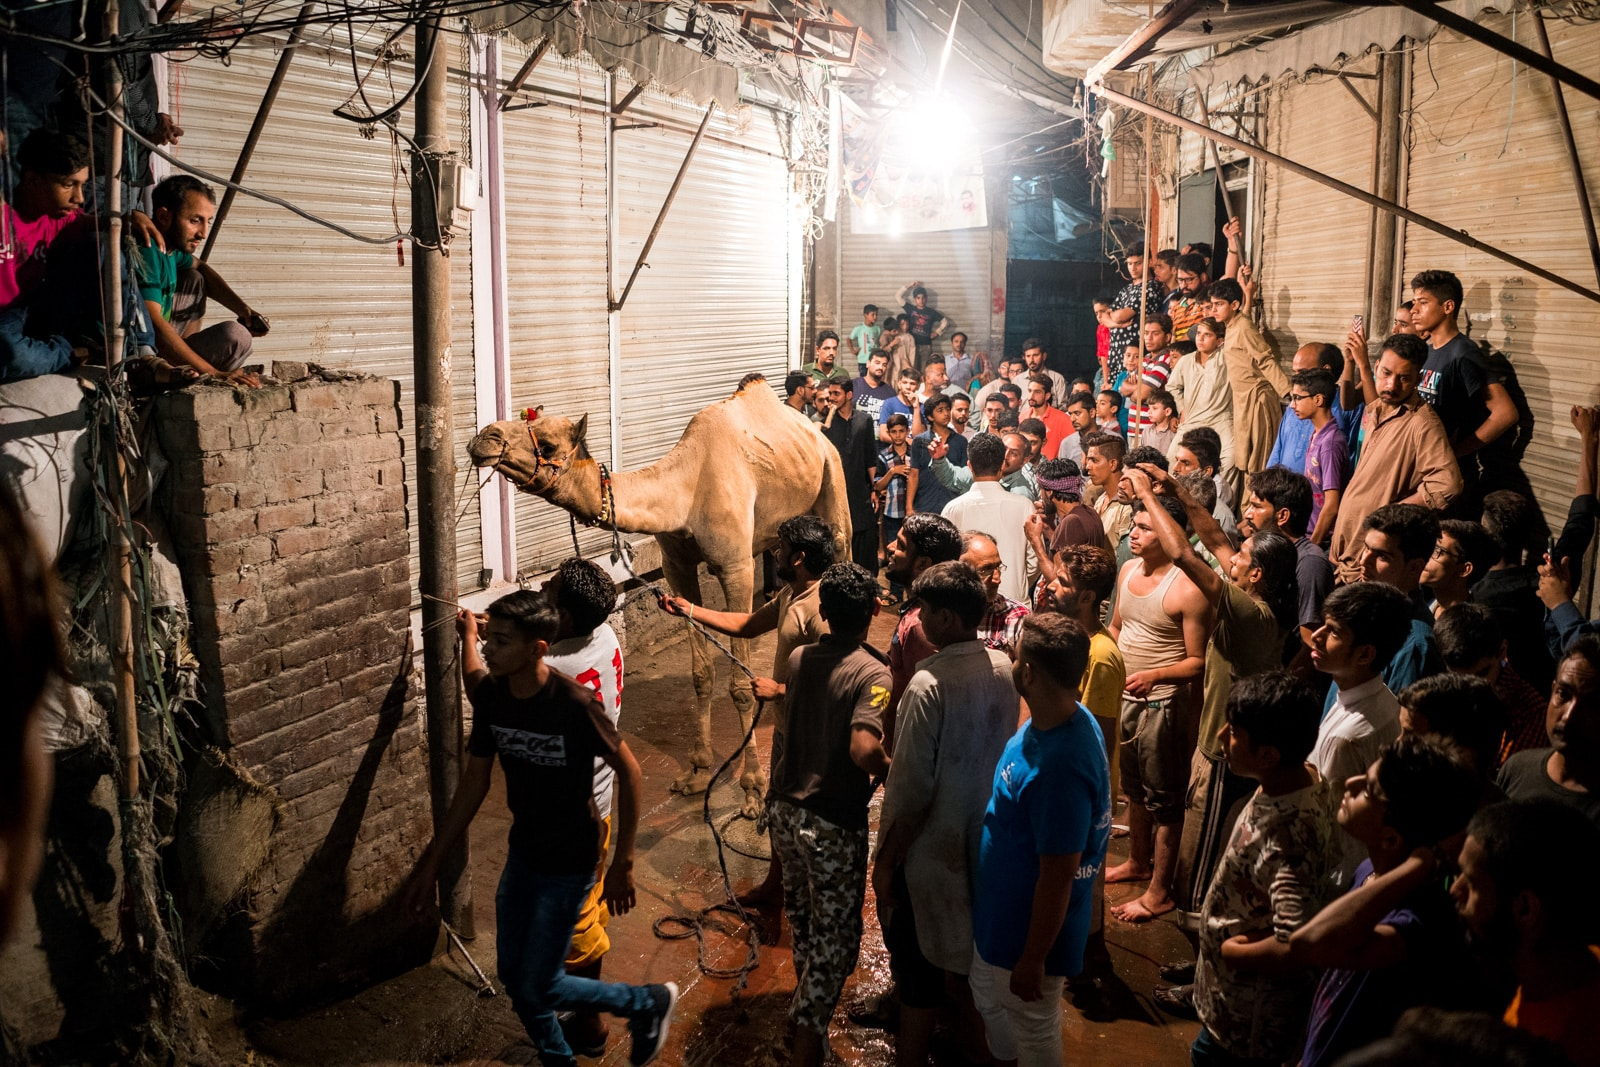 Celebrating Eid al-Adha in Lahore, Pakistan - Camel surrounded by a crowd of men - Lost With Purpose travel blog